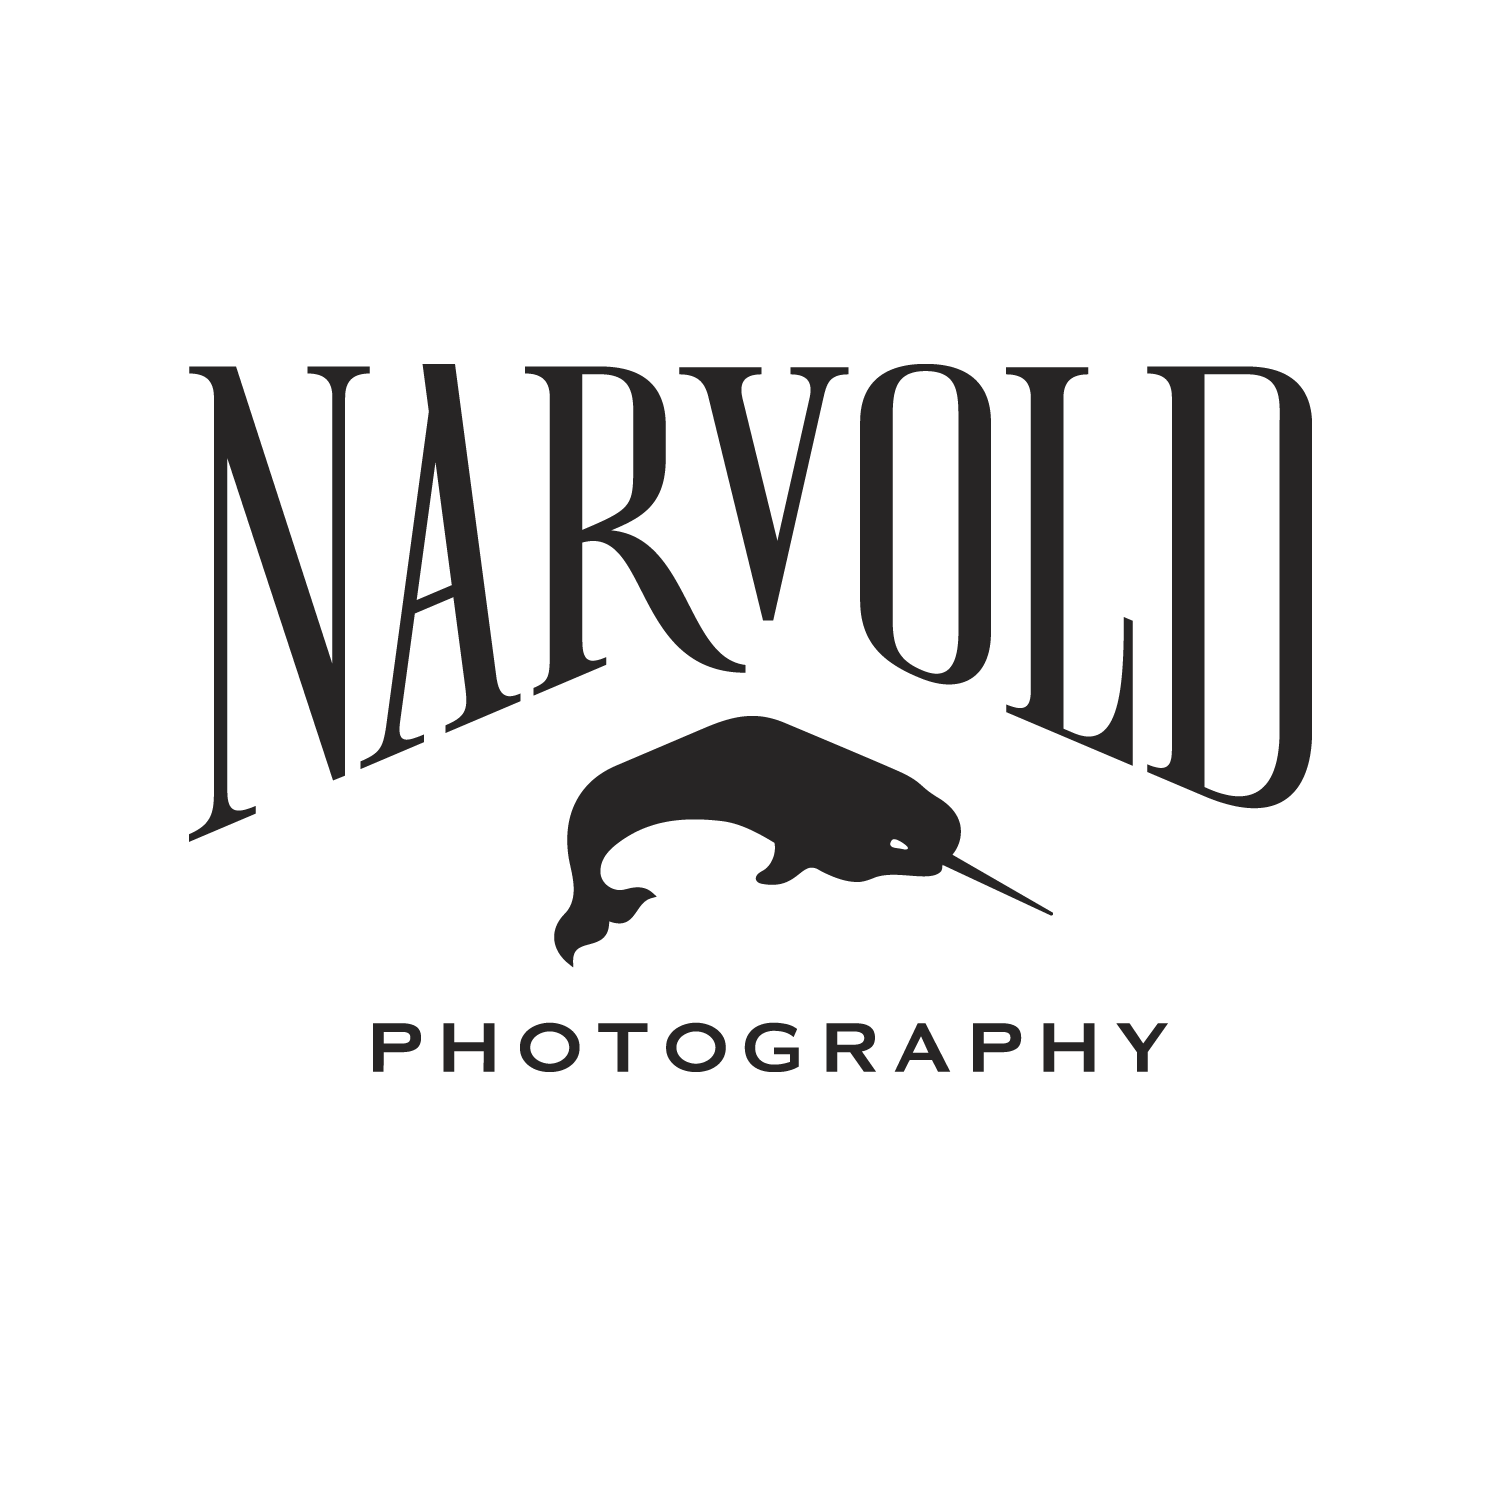 NARVOLD Photography